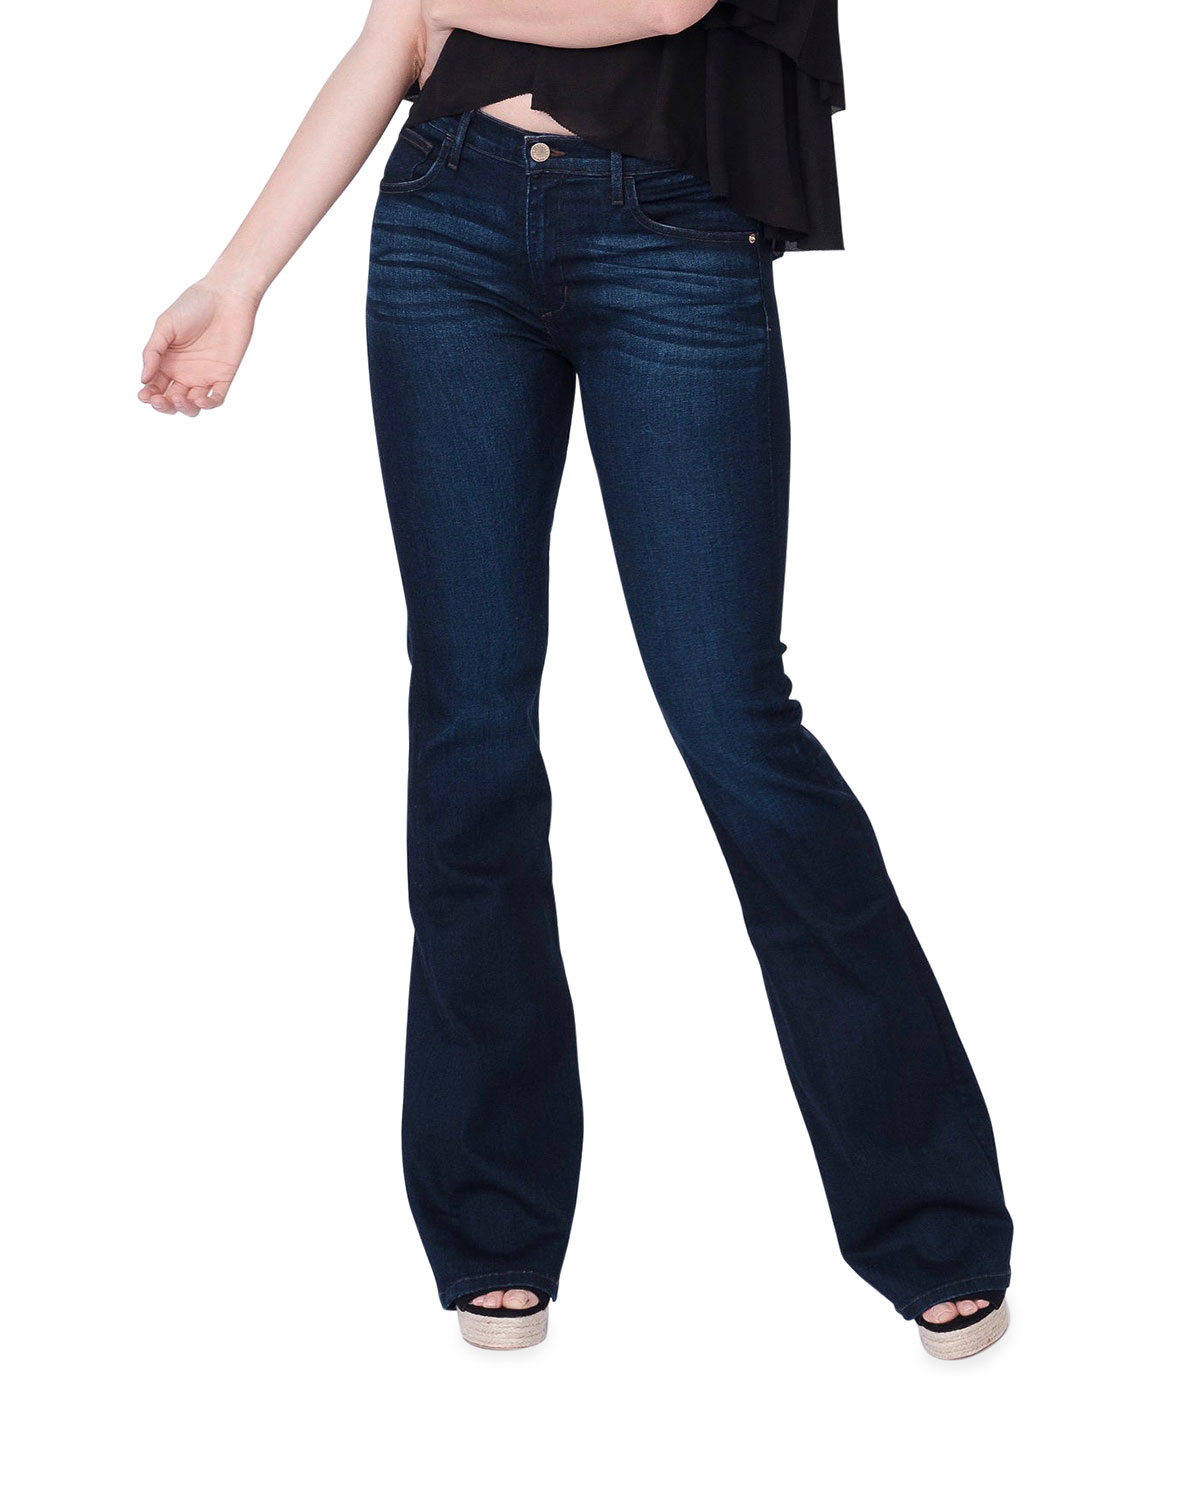 Valentina Mid-Rise Flare Jeans